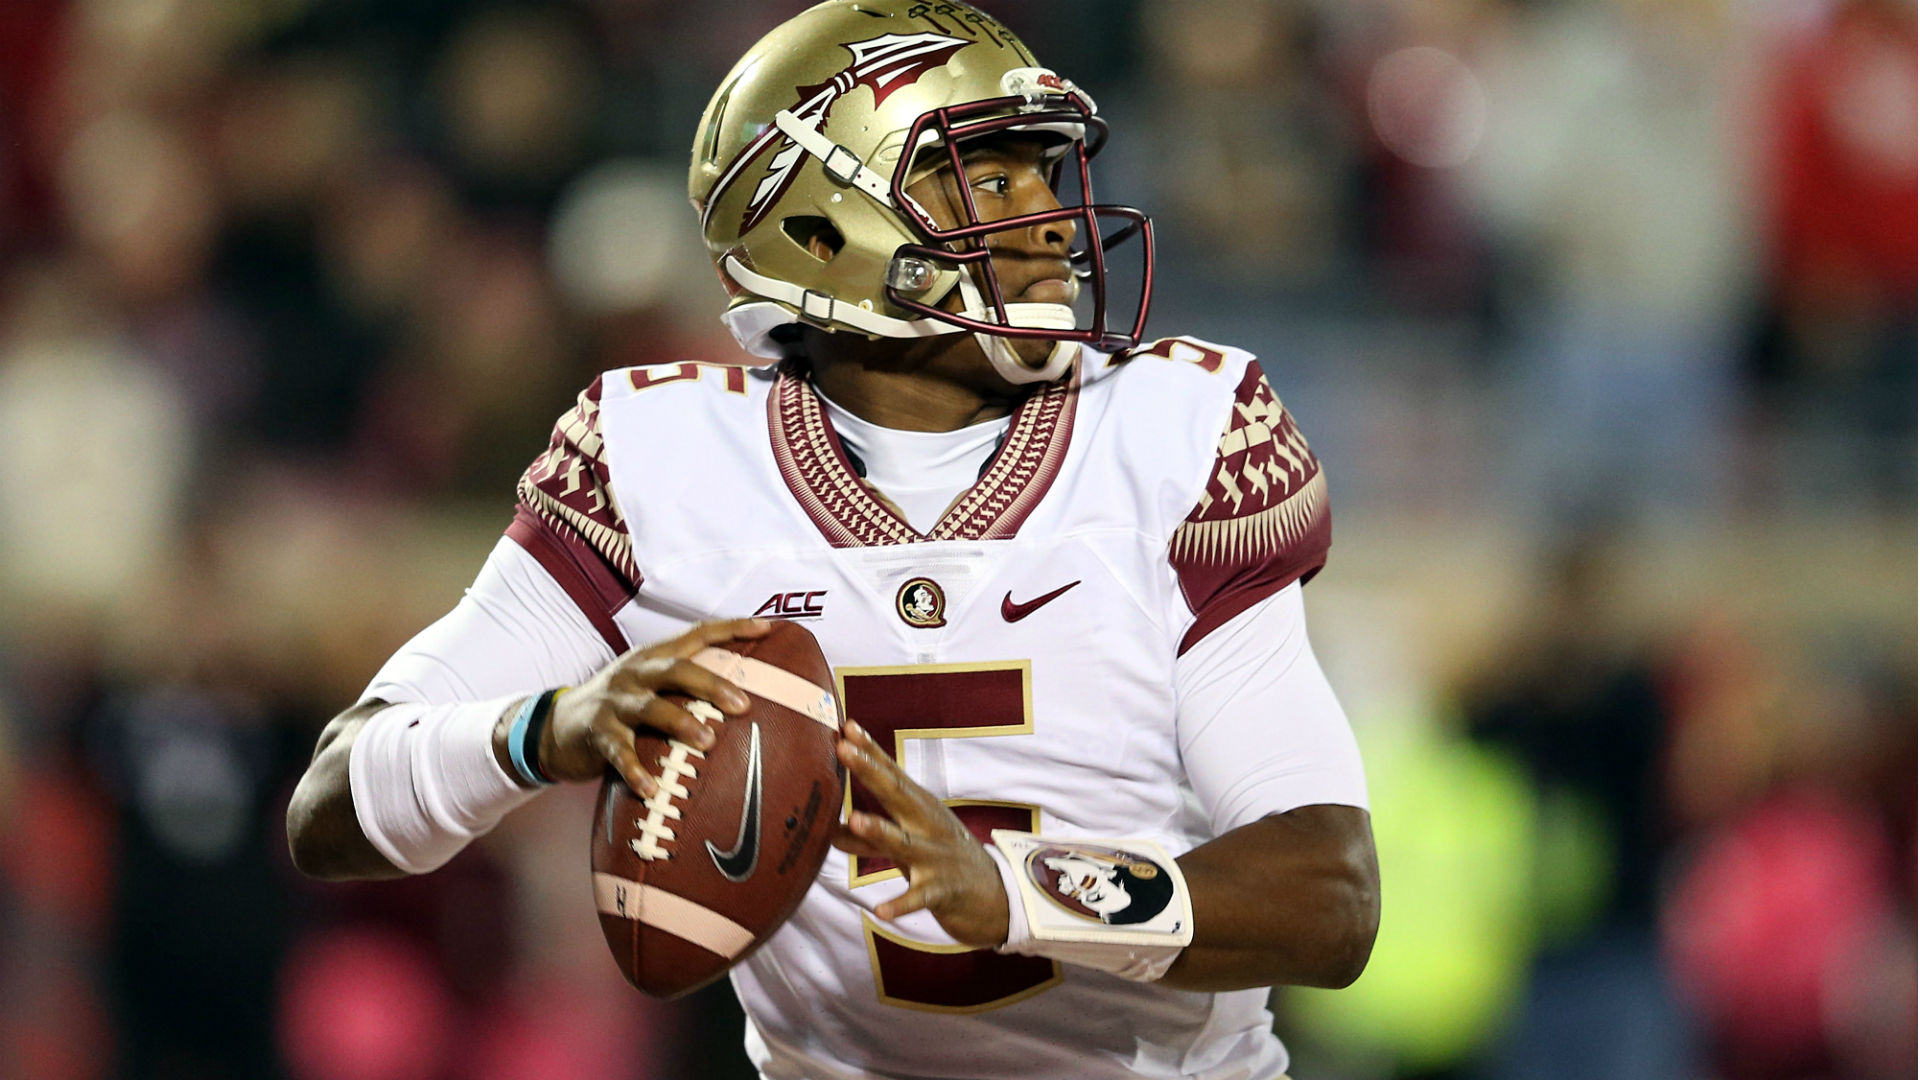 College football lines and leans – Your Week 12 betting guide